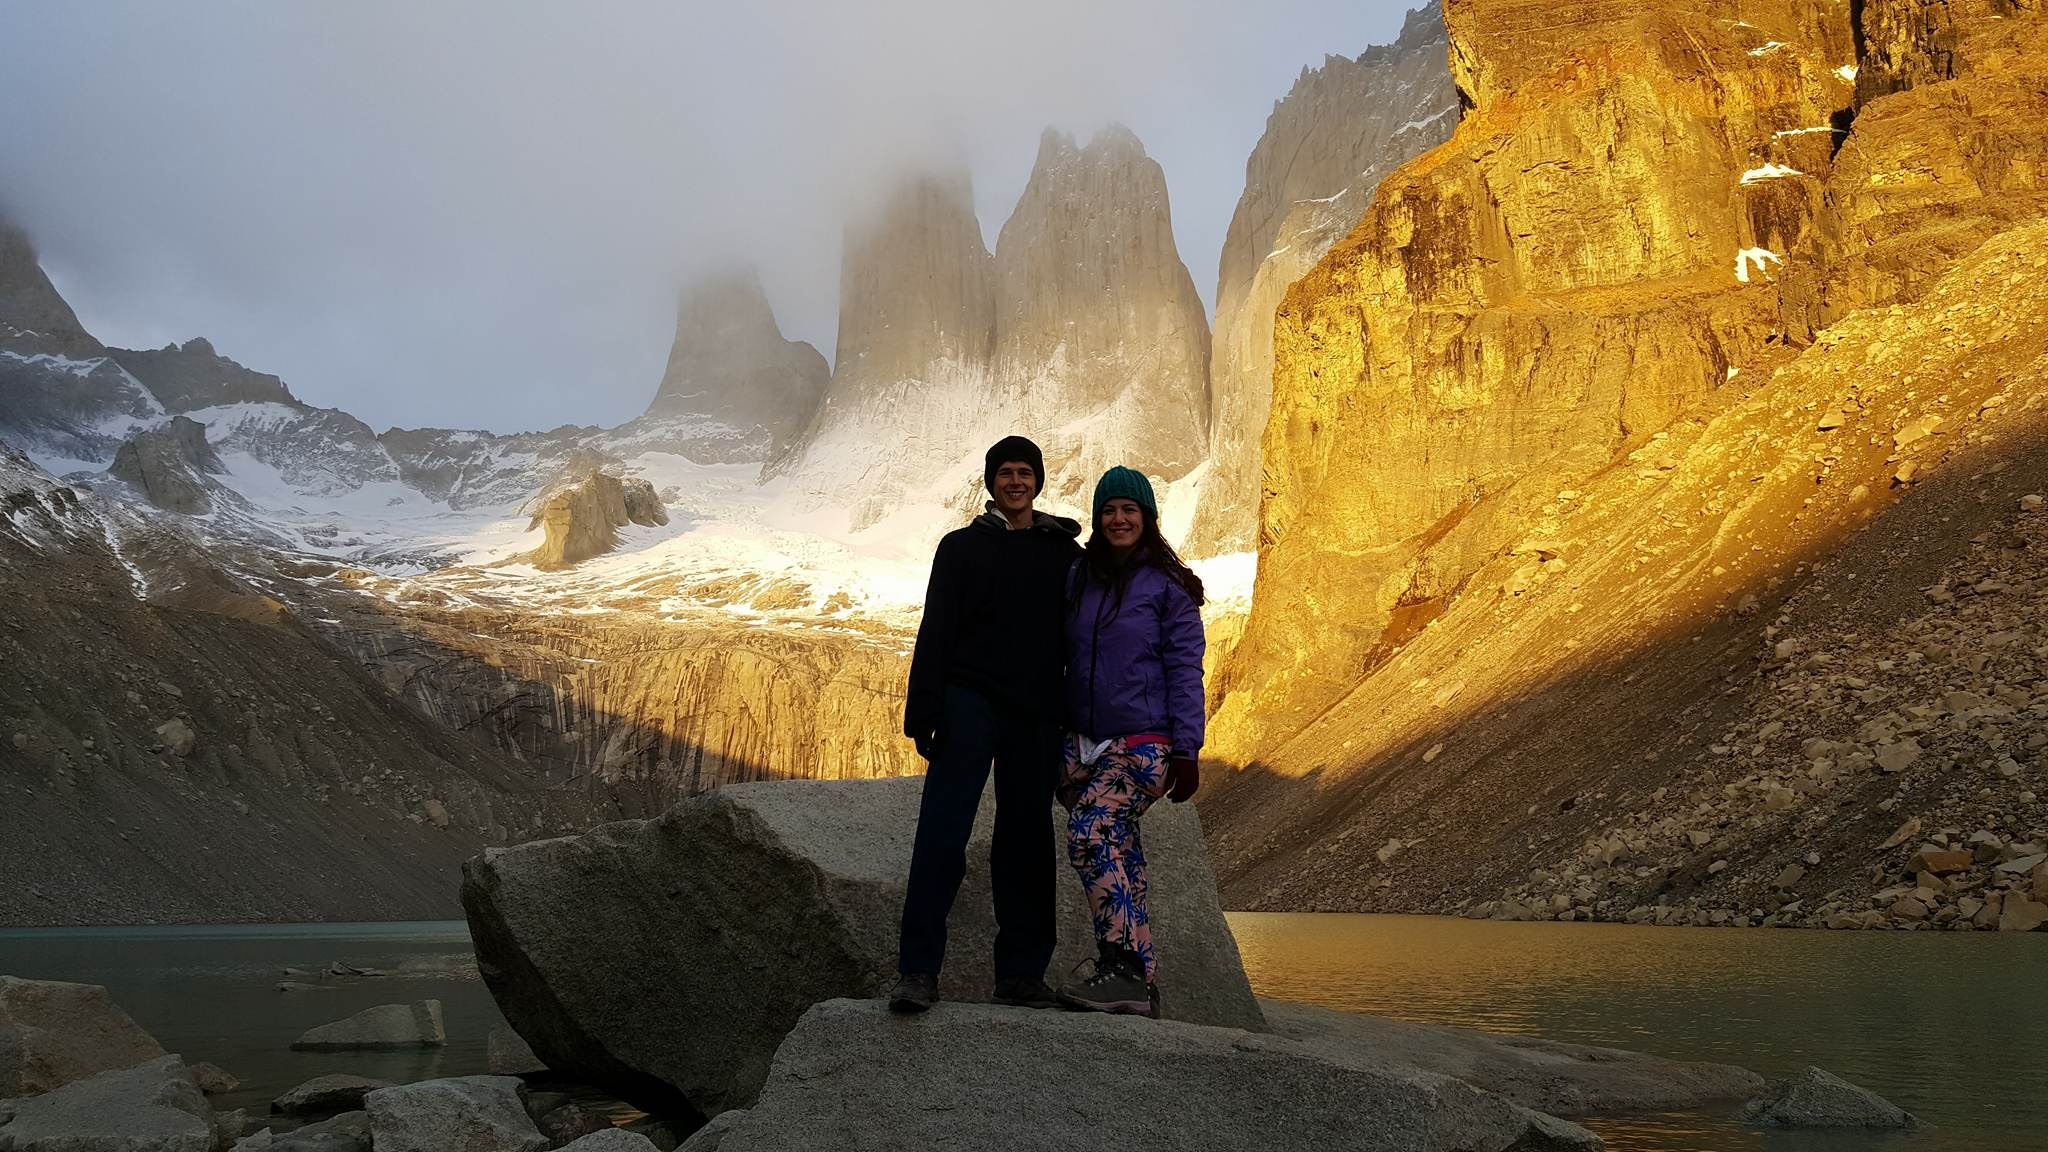 Sunrise at torres del paine national park